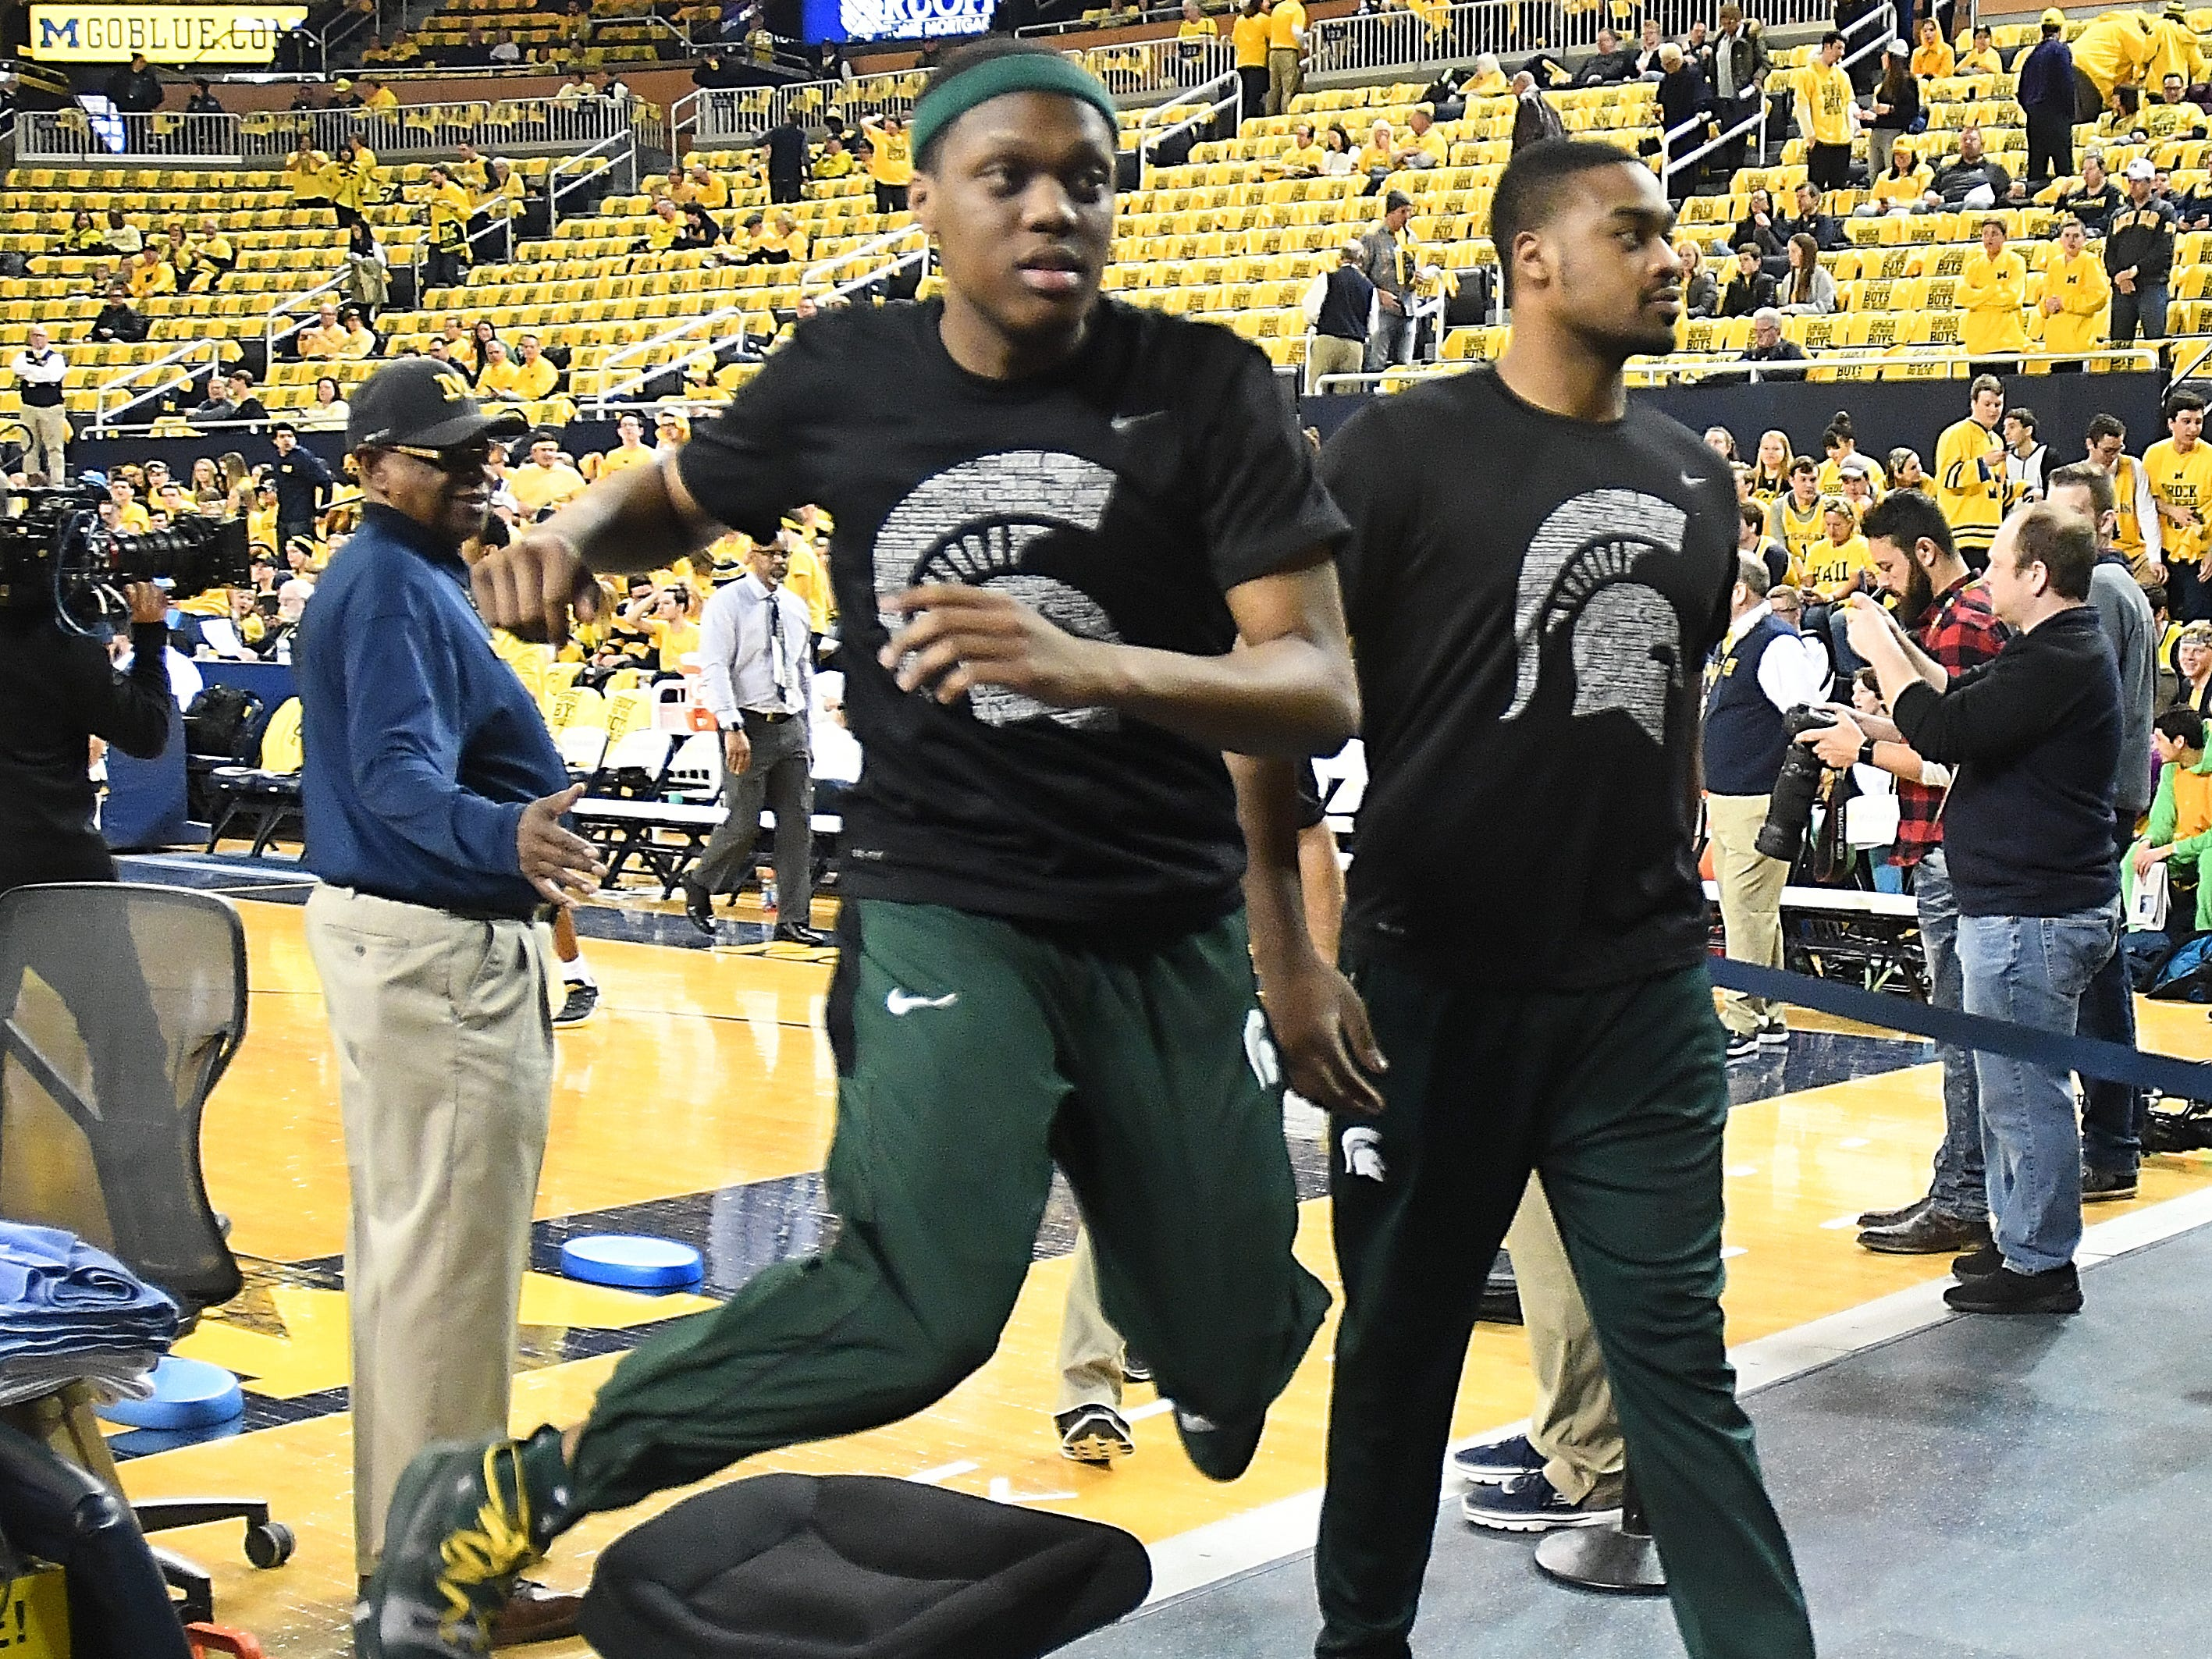 Michigan State's Cassius Winston leaps over a chair as he and injured Nick Ward leave the court after warmups.